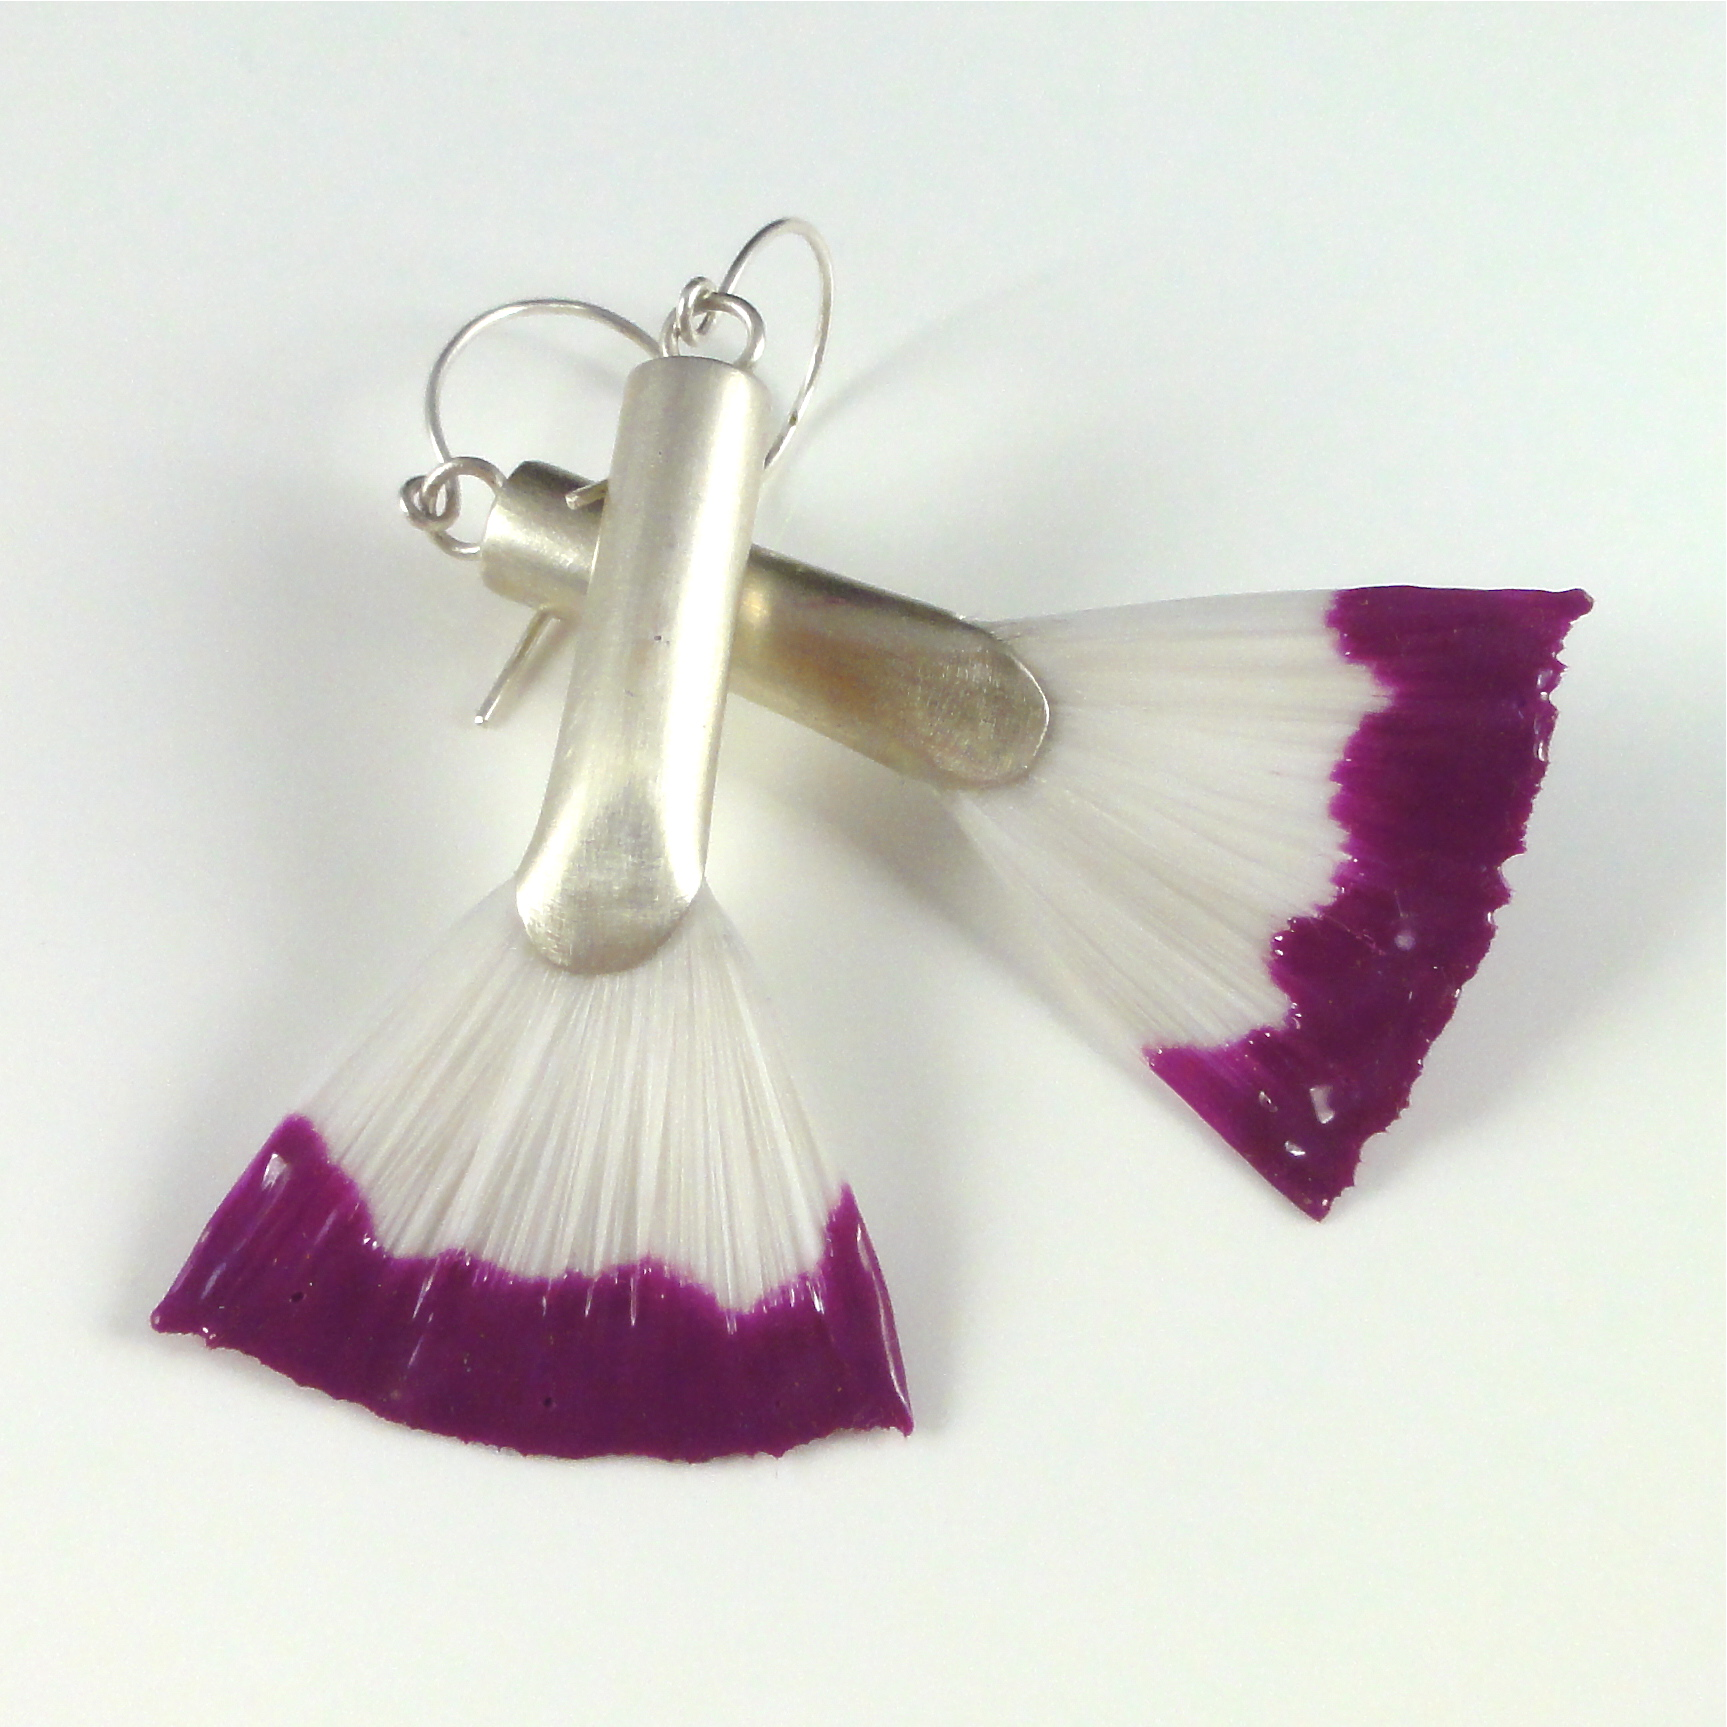 Sterling silver earrings with paint brushes